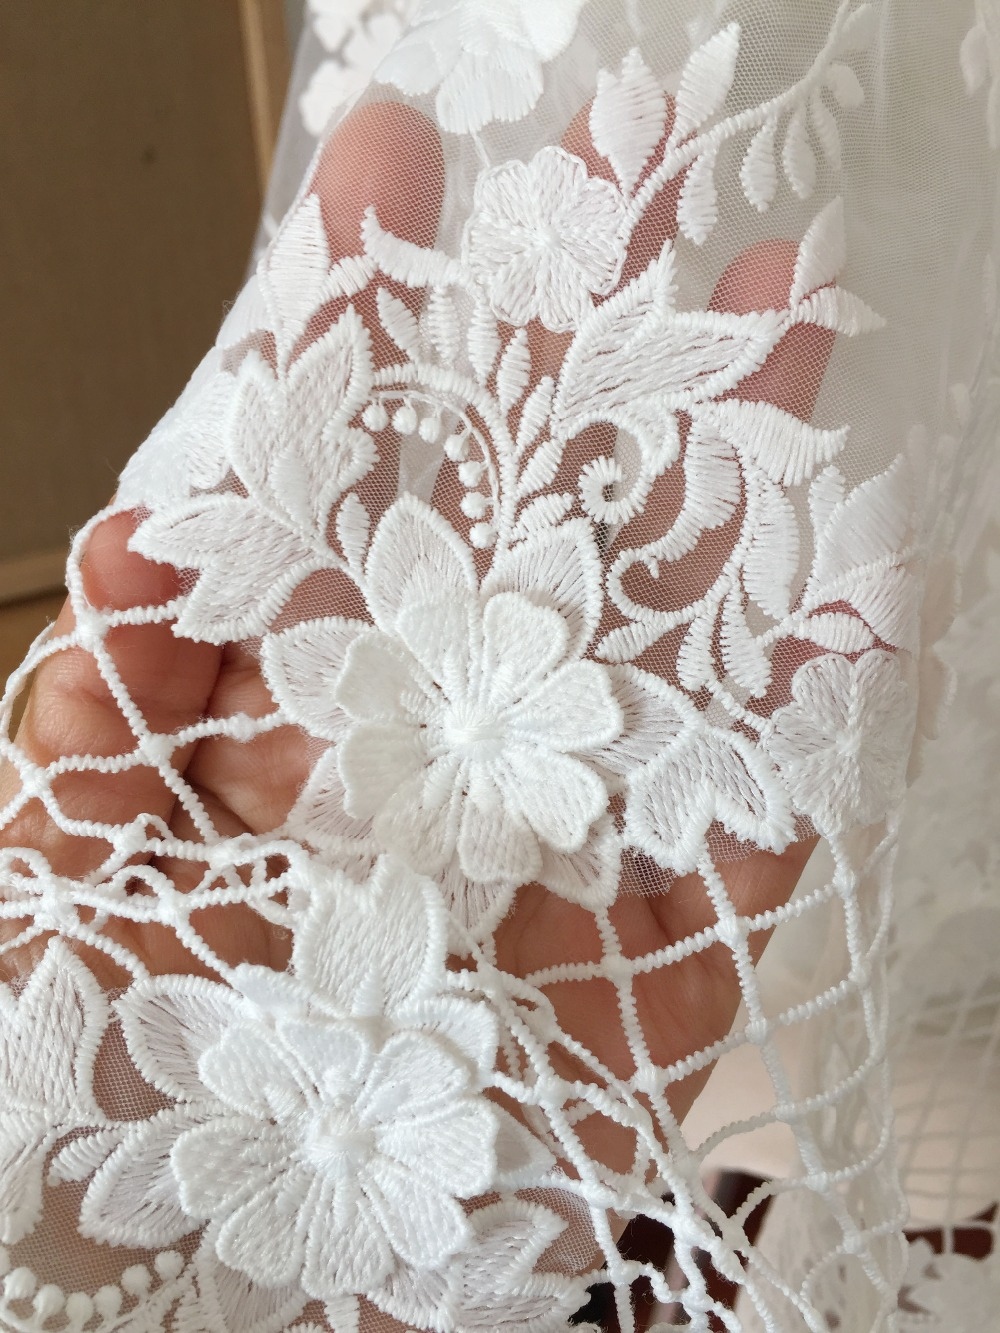 5 yards 3D Hollowed Guipure Lace Fabric Off White with Petals, Tulle Embroidered Lace Fabric by Yard for Wedding Gown Prom Boho